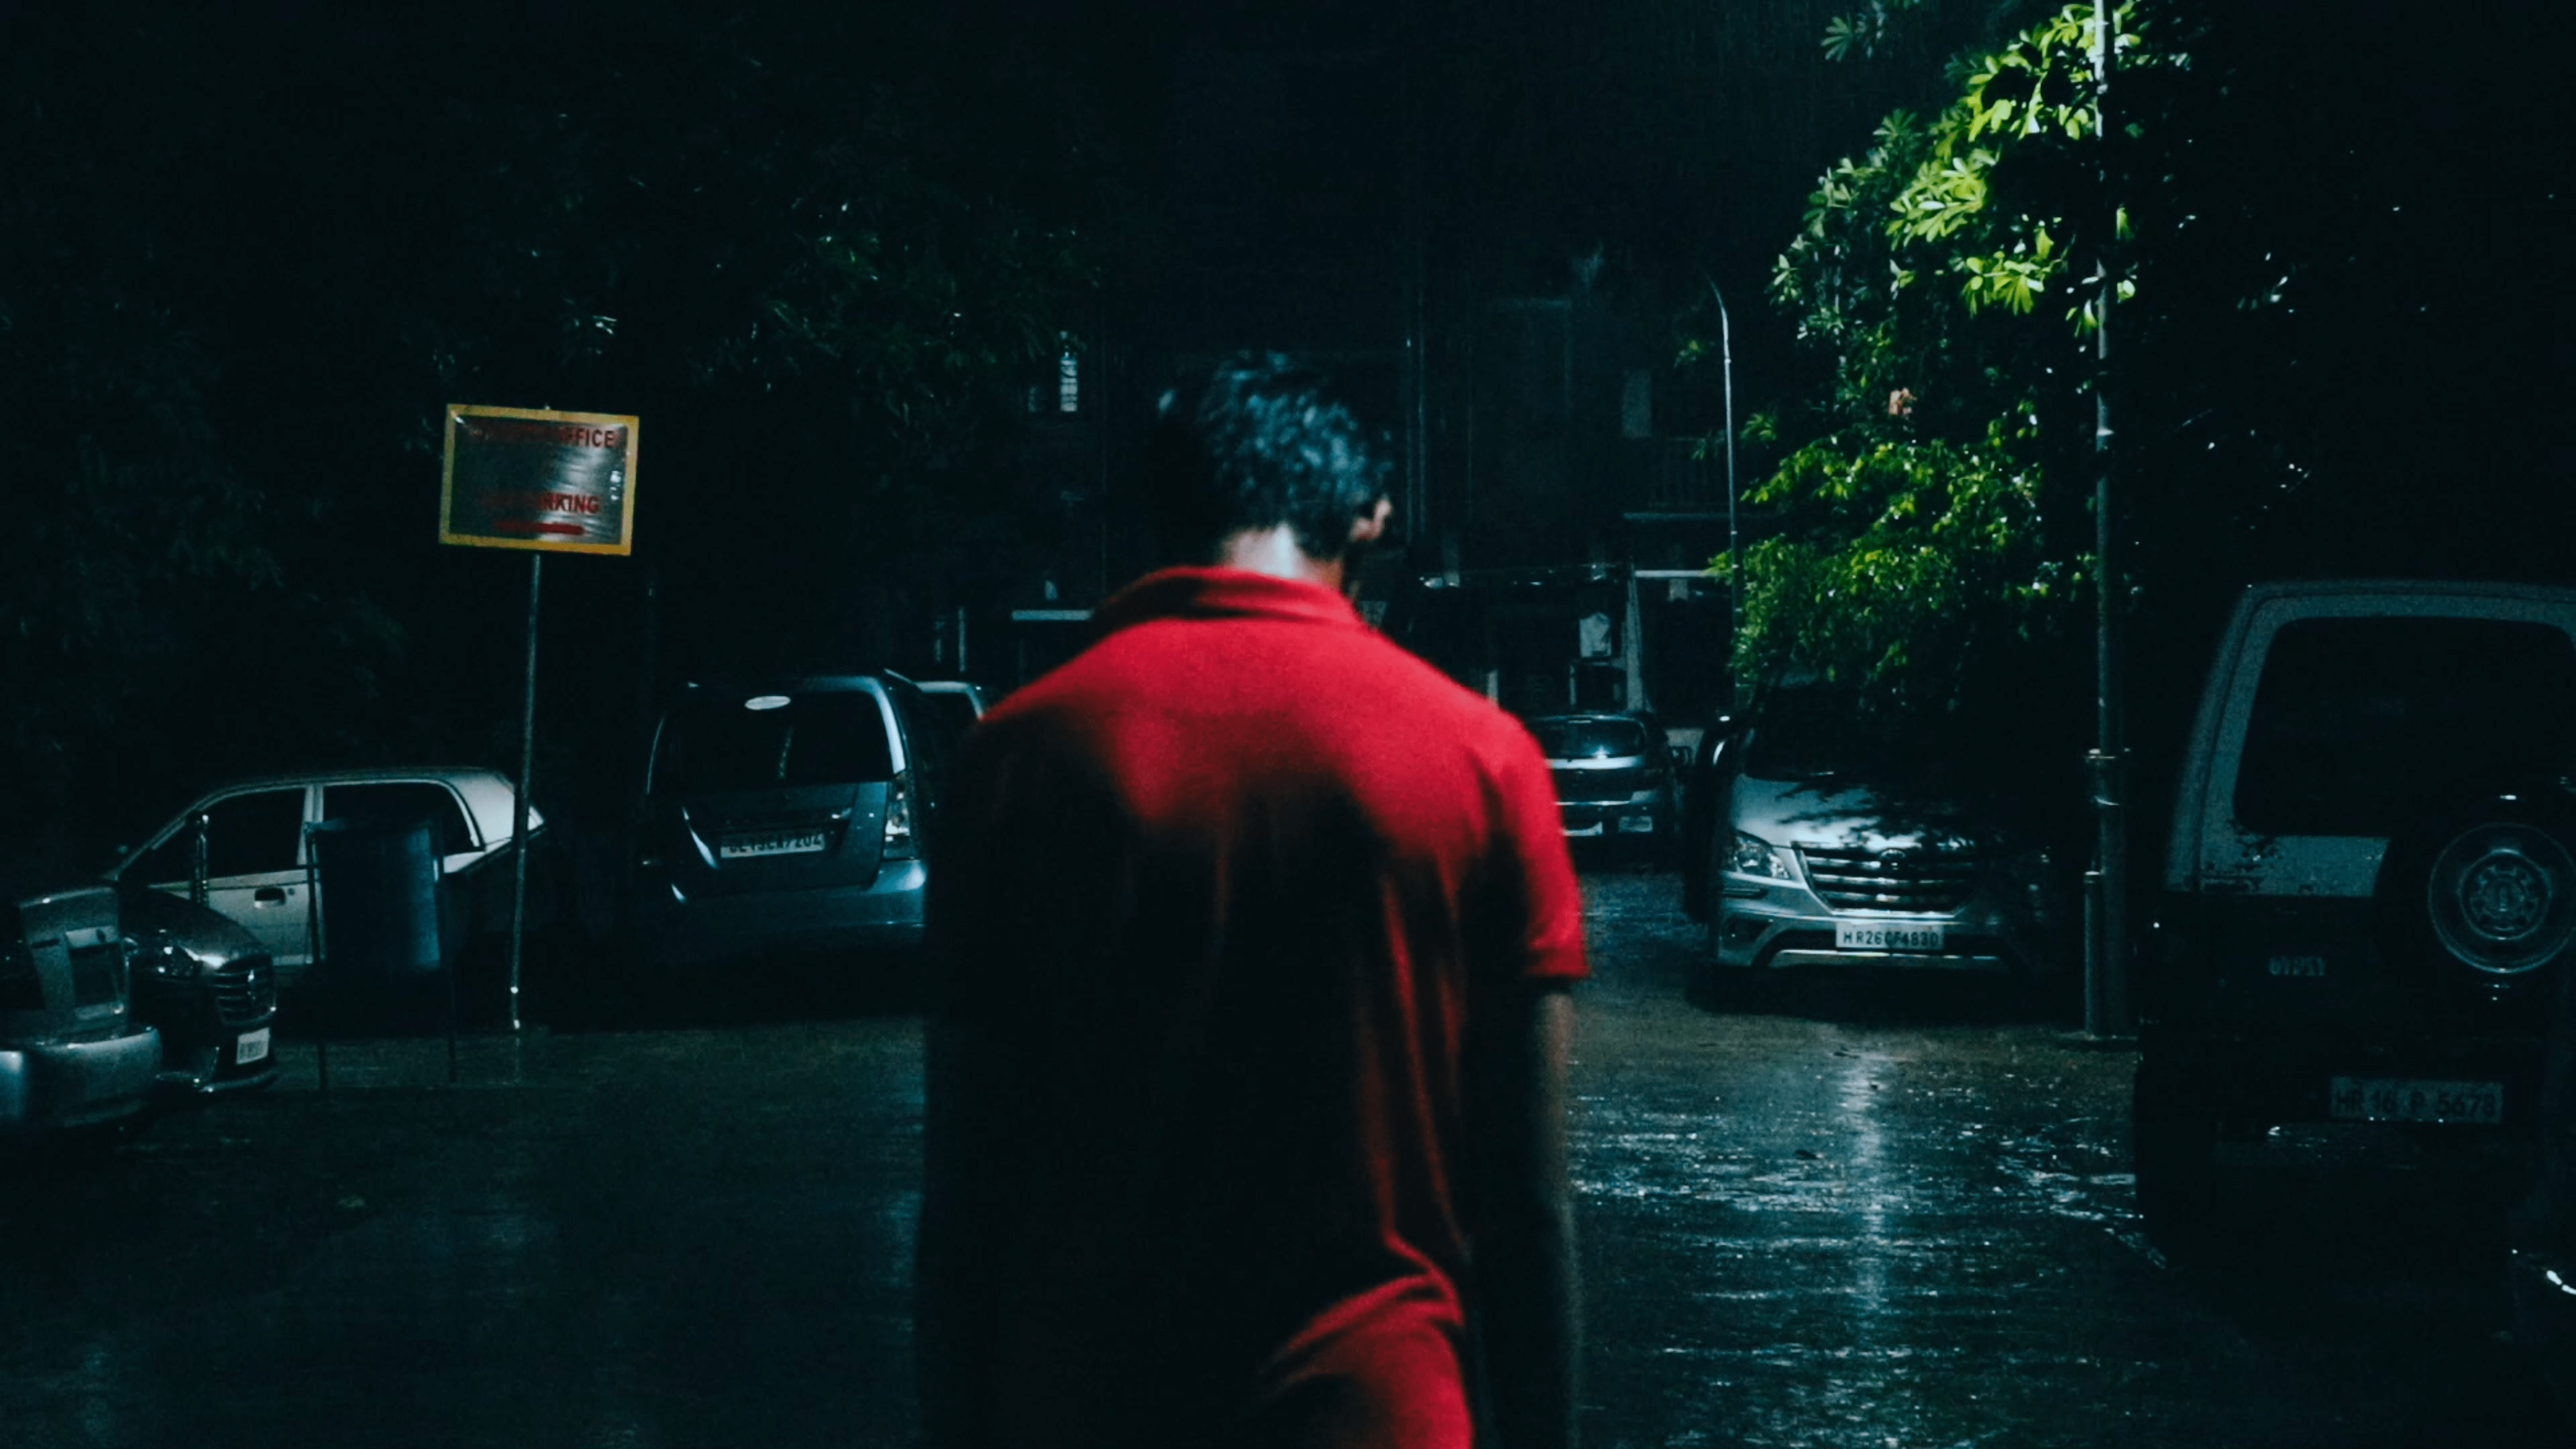 Still images from the short film distorted showing a person walking in the rain.